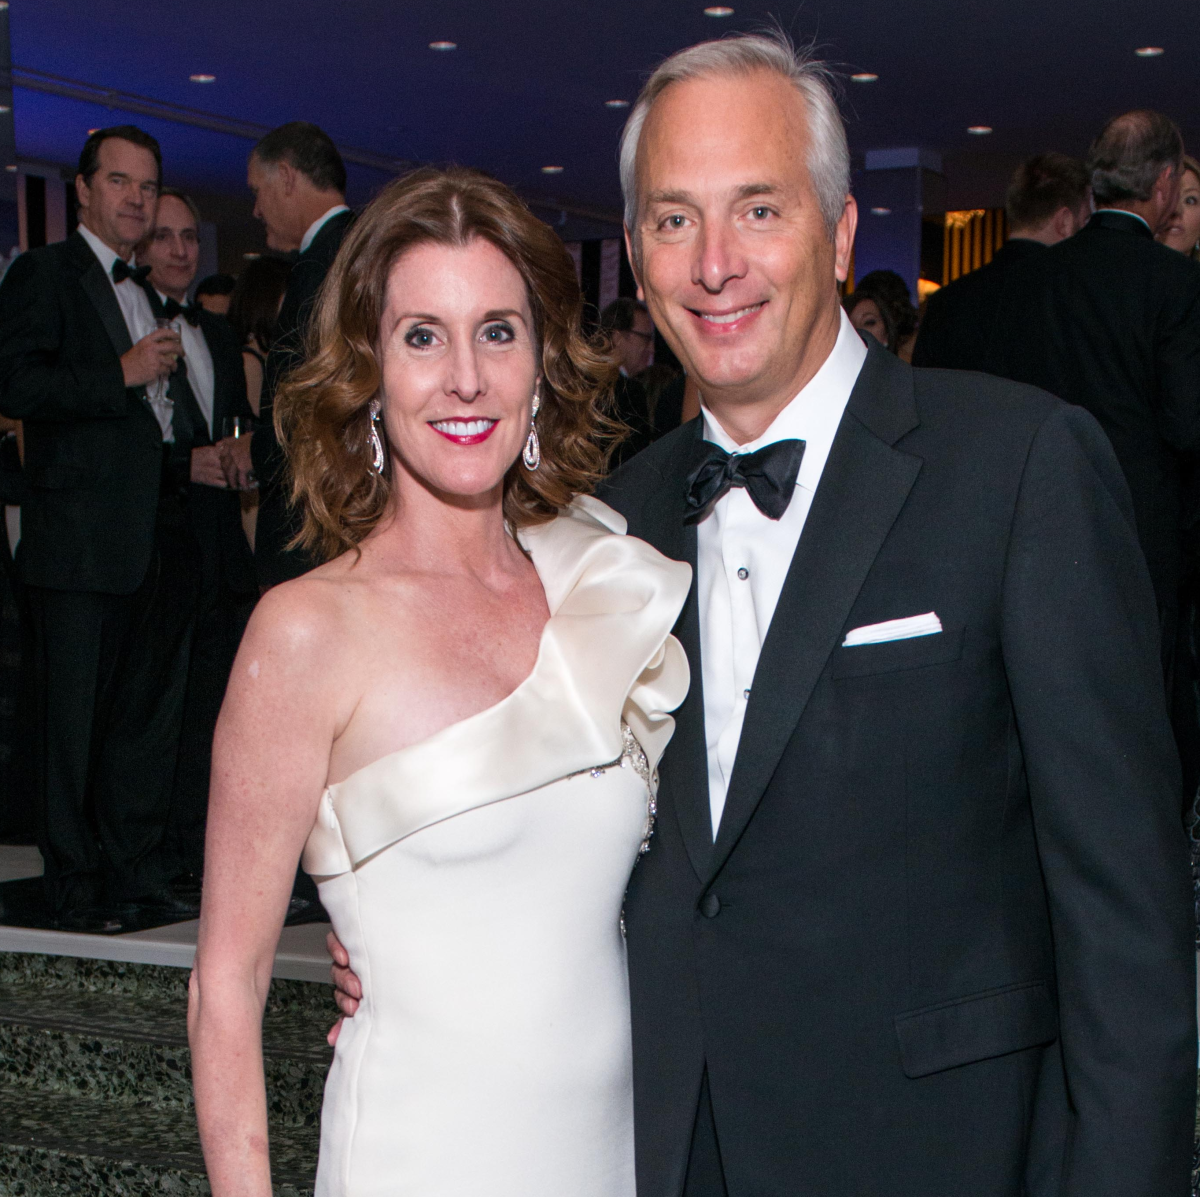 News, Shelby, Museum of Fine Arts gala, Oct. 2015, Bobby Tudor, Phoebe Tudor